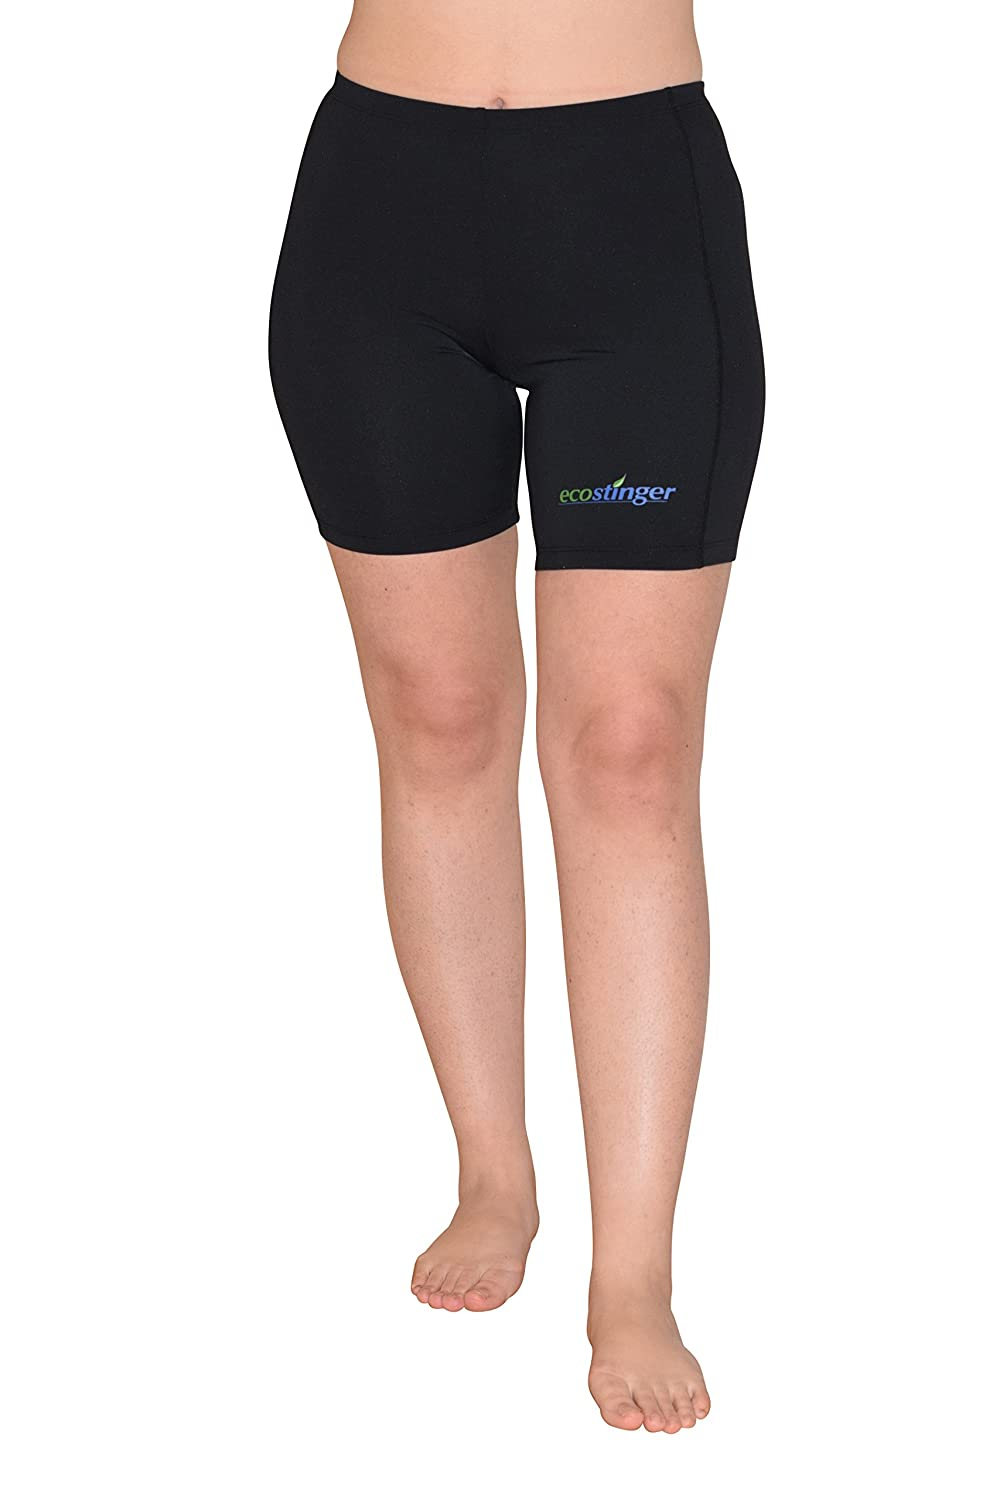 EcoStinger Women Swimming Shorts Above Knee Length Sun Protection UPF50+ Black A401-BLA